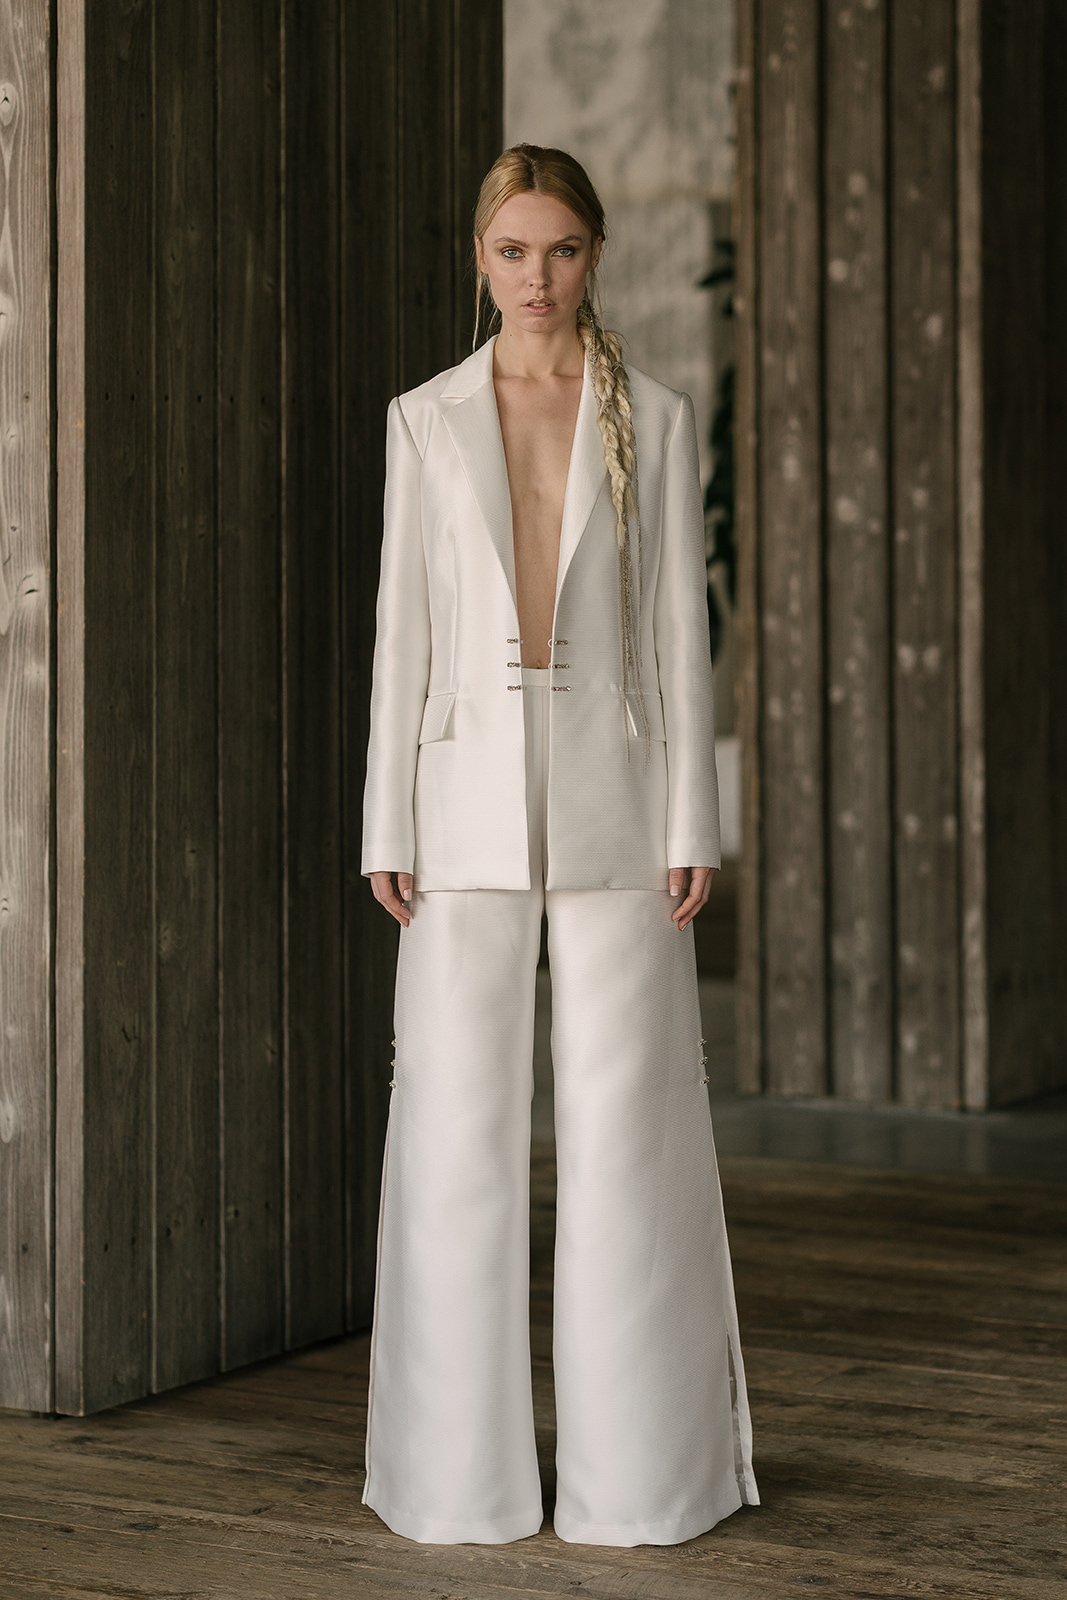 rivini by rita vinieris spring 2019 wedding suit